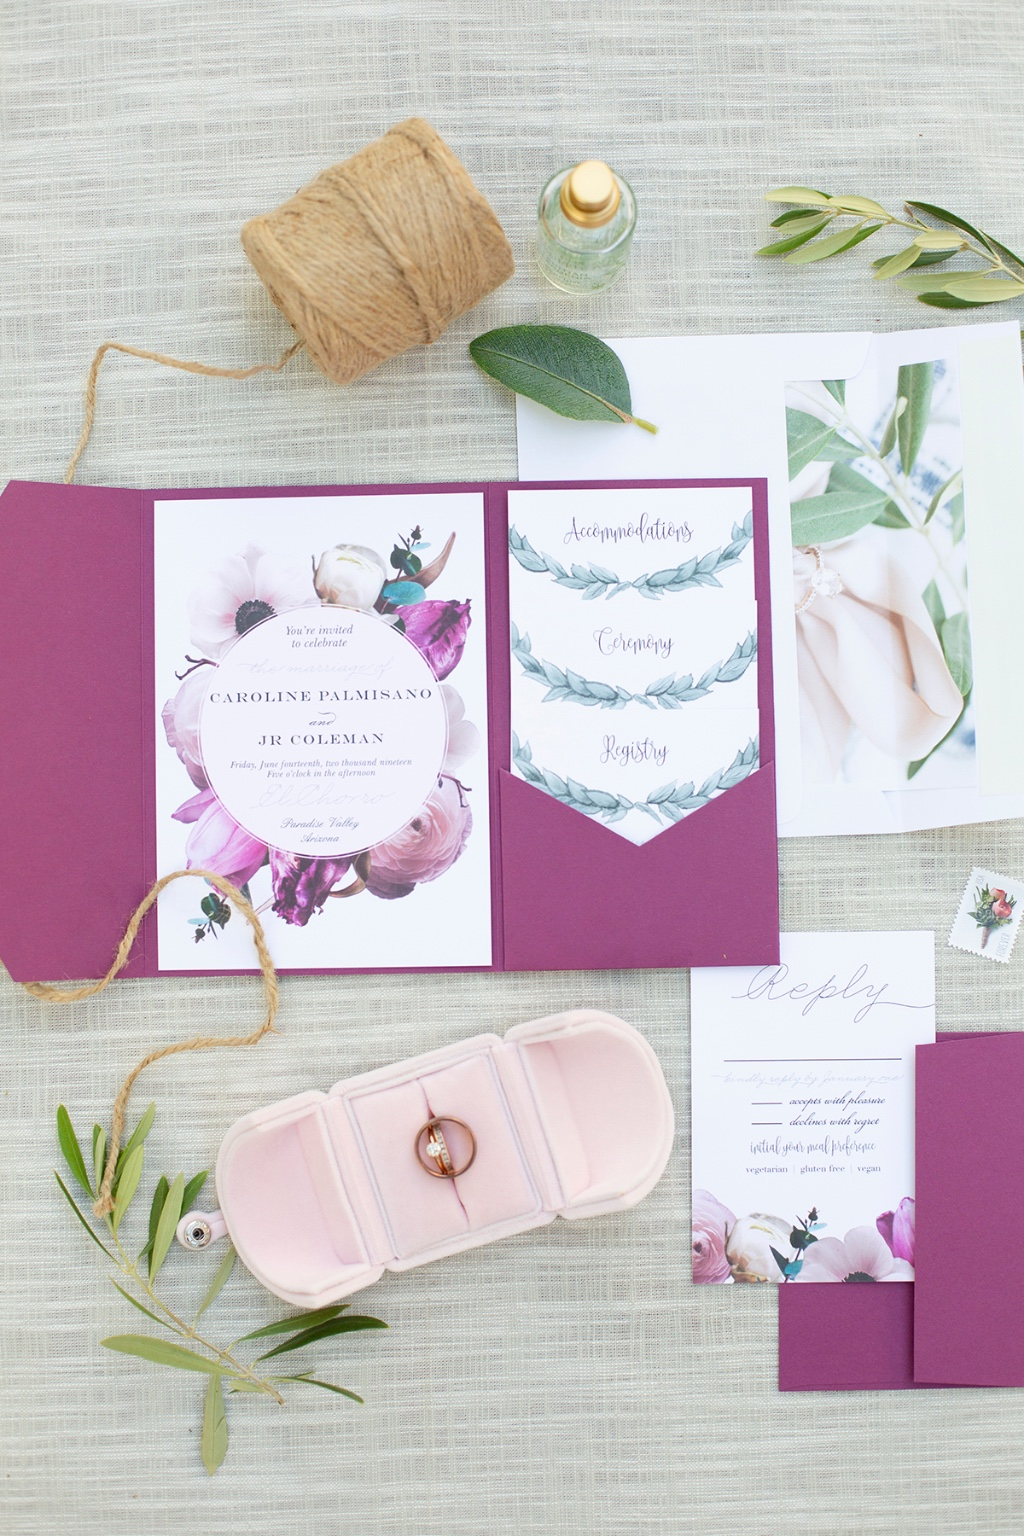 Combine multiple designs to create a truly unique wedding suite! Our Southern Romance Wedding Invitations paired with our Leafy Love